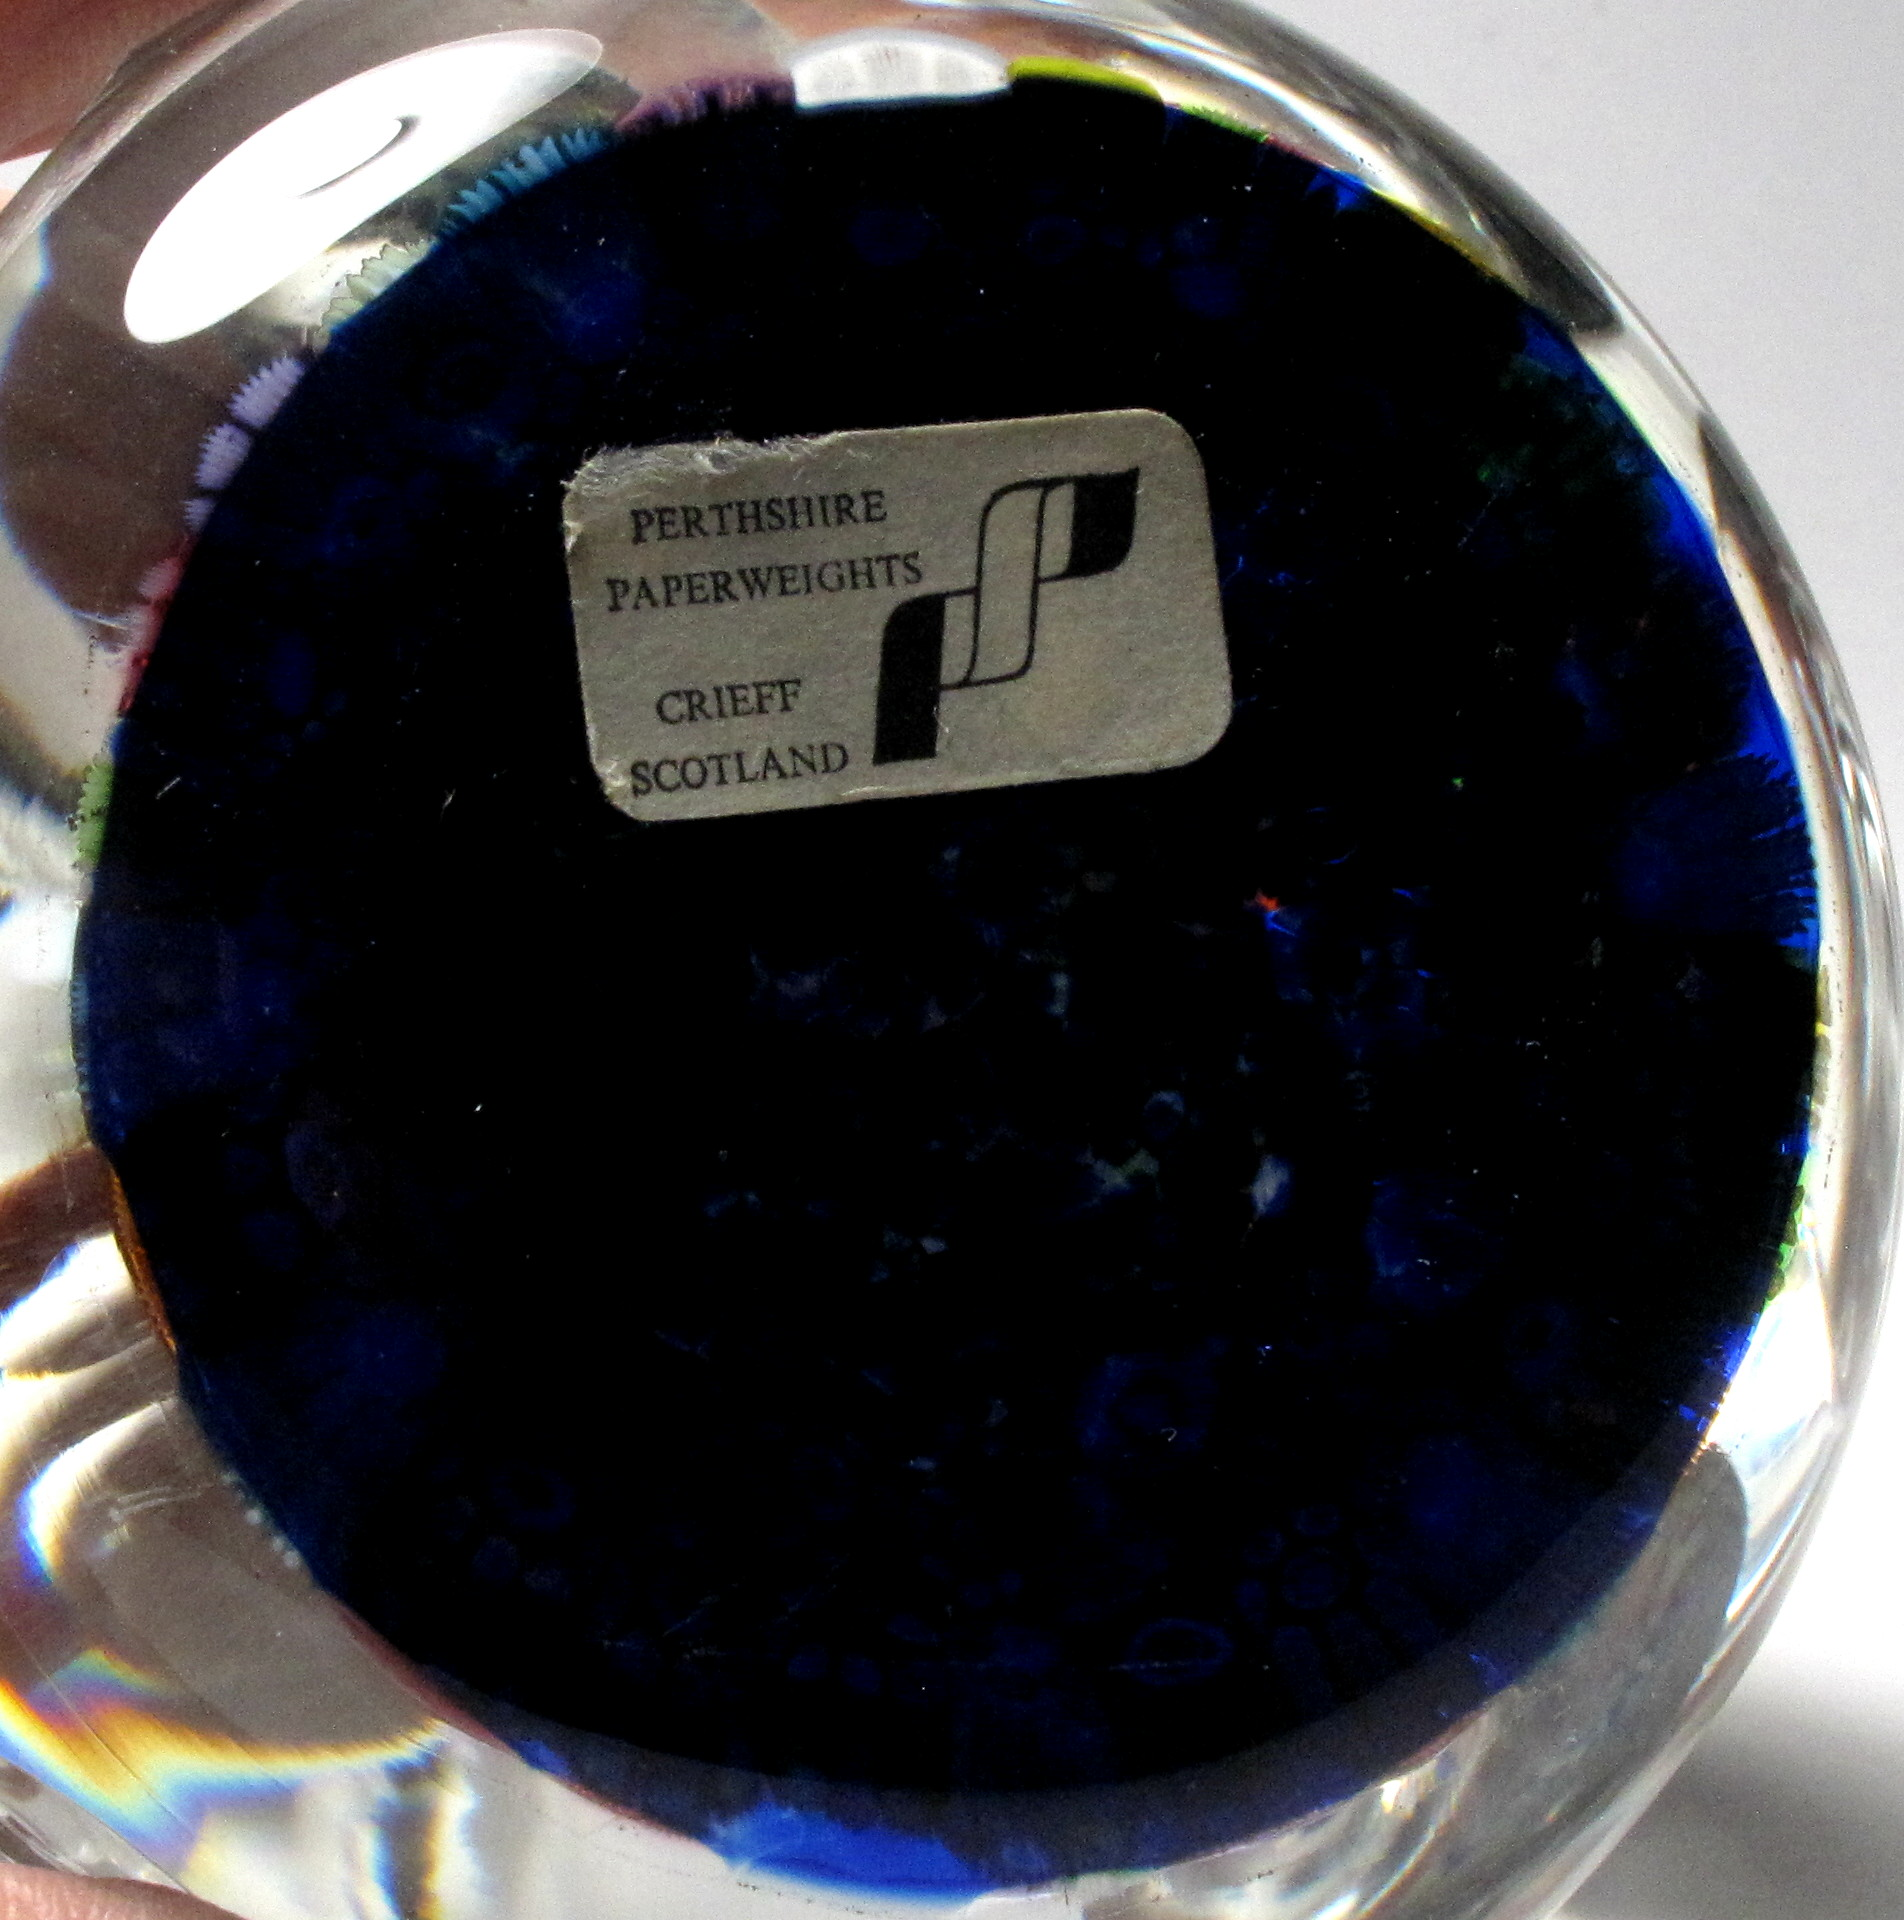 Dating perthshire paperweights christmas